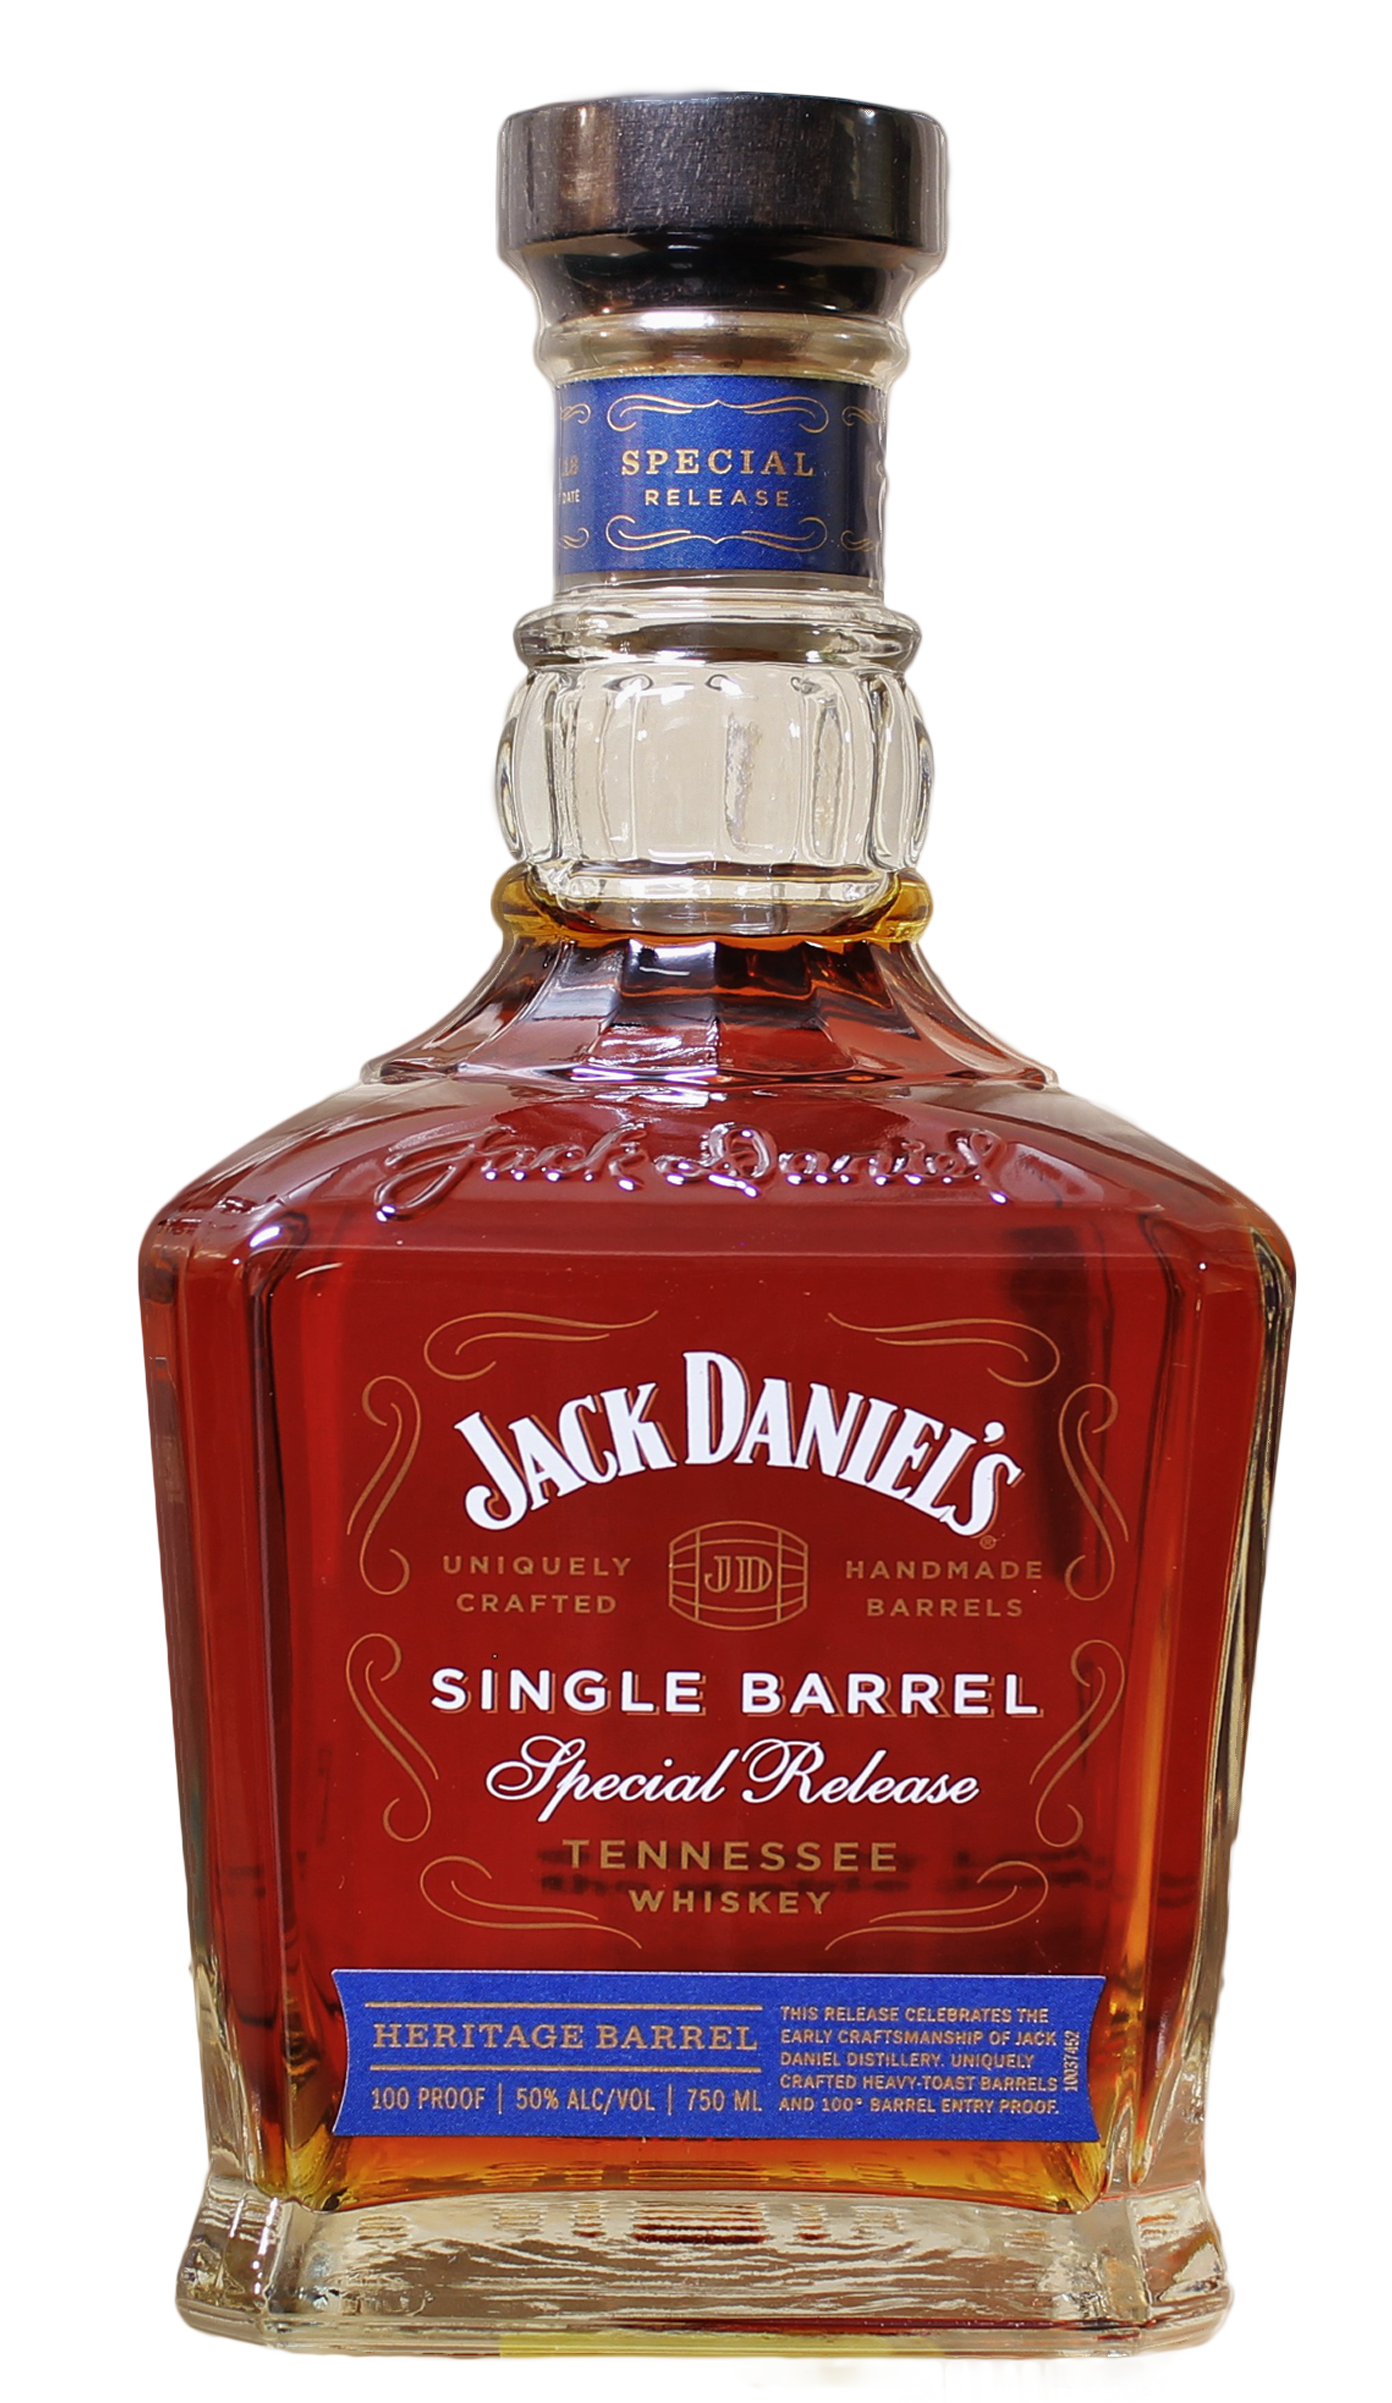 Belle Of Lincoln Decanter Jack Daniels Bottles In 2020 Jack Daniels Bottle Jack Daniels Bottle Monogram